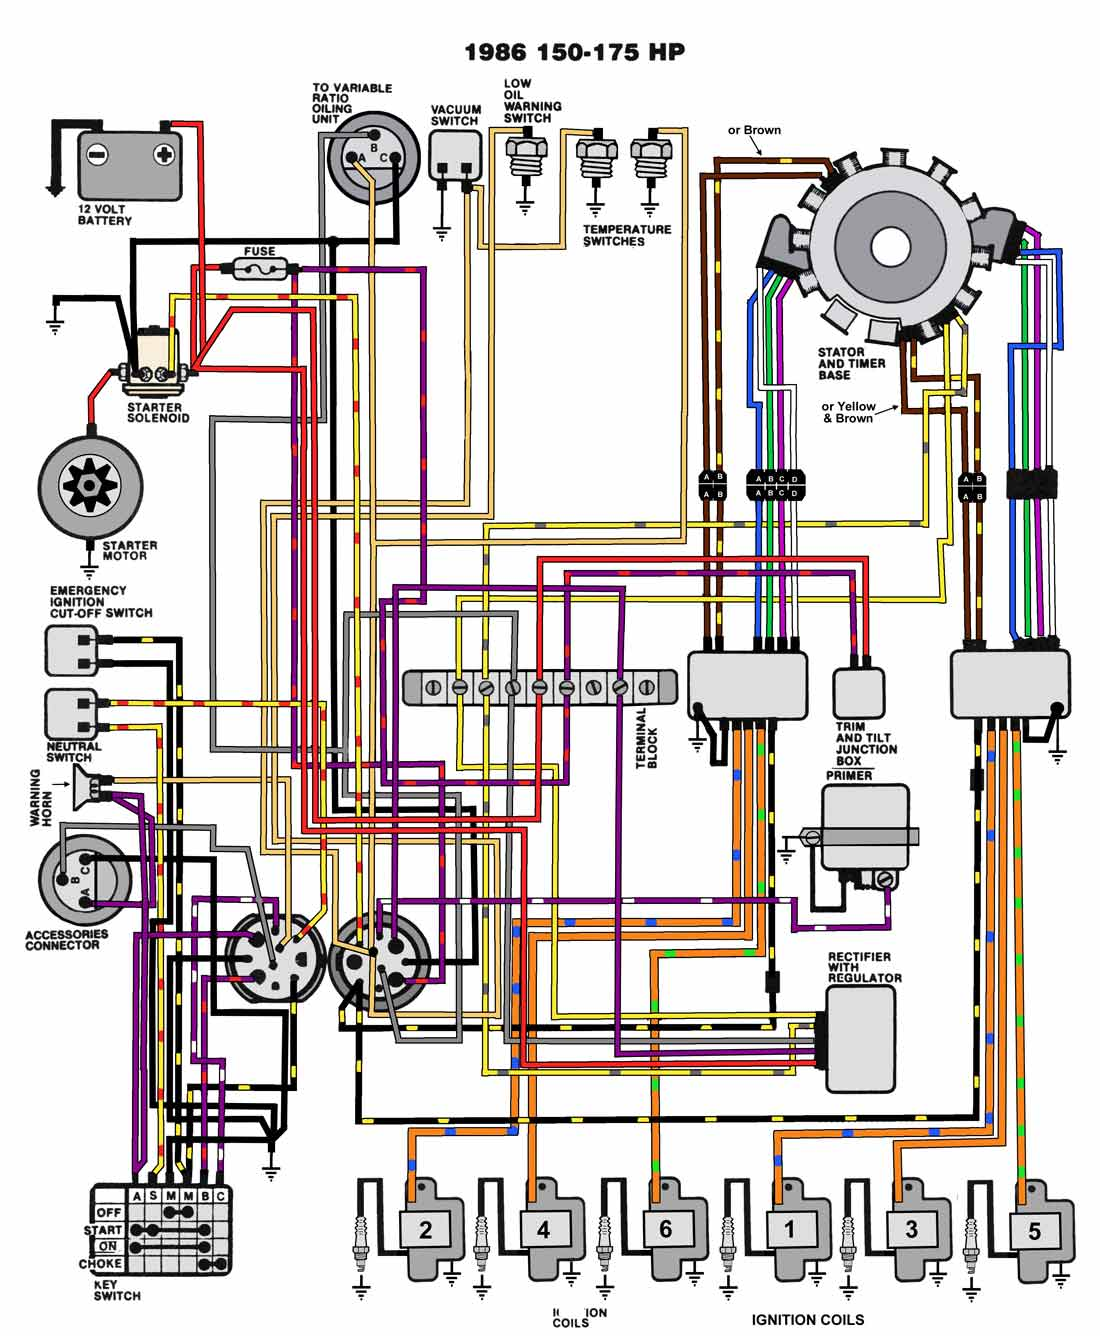 200 V6 Mercury Control Wiring Diagram